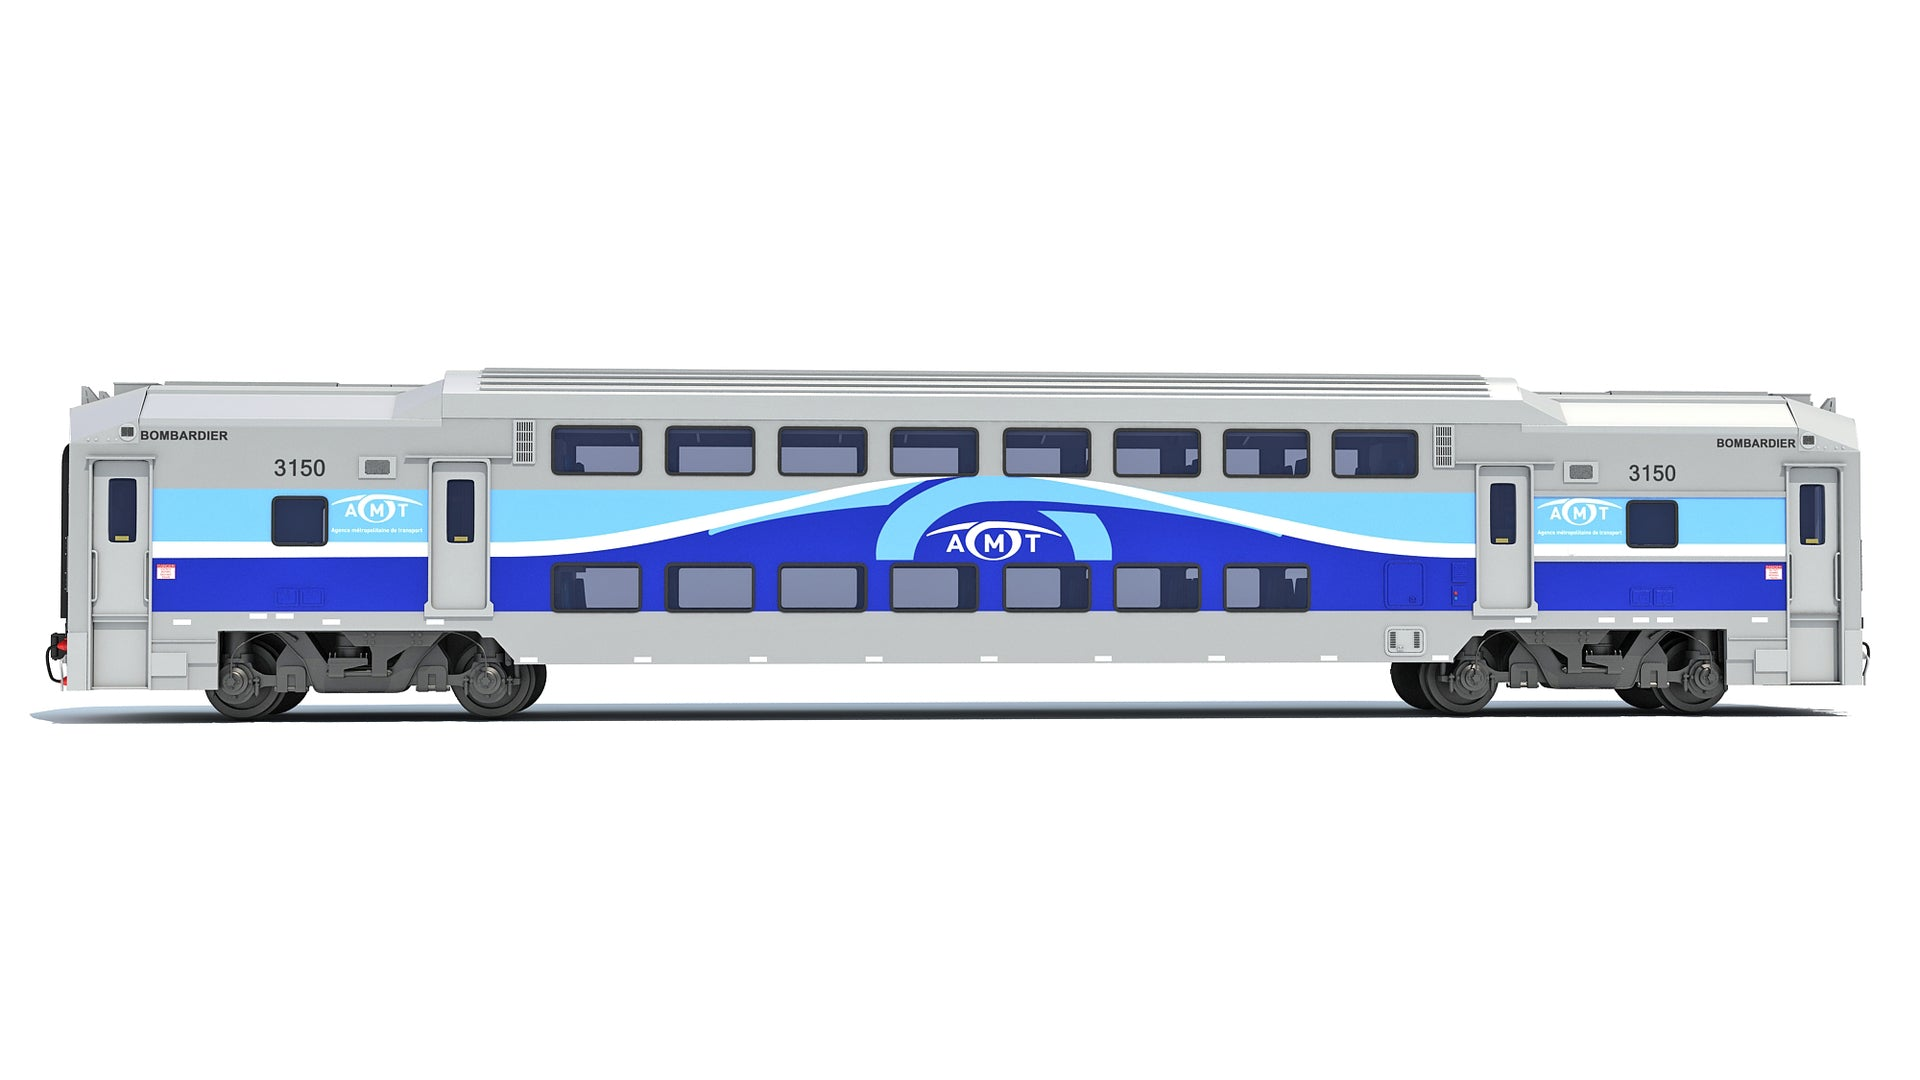 Exo Train Passenger Car